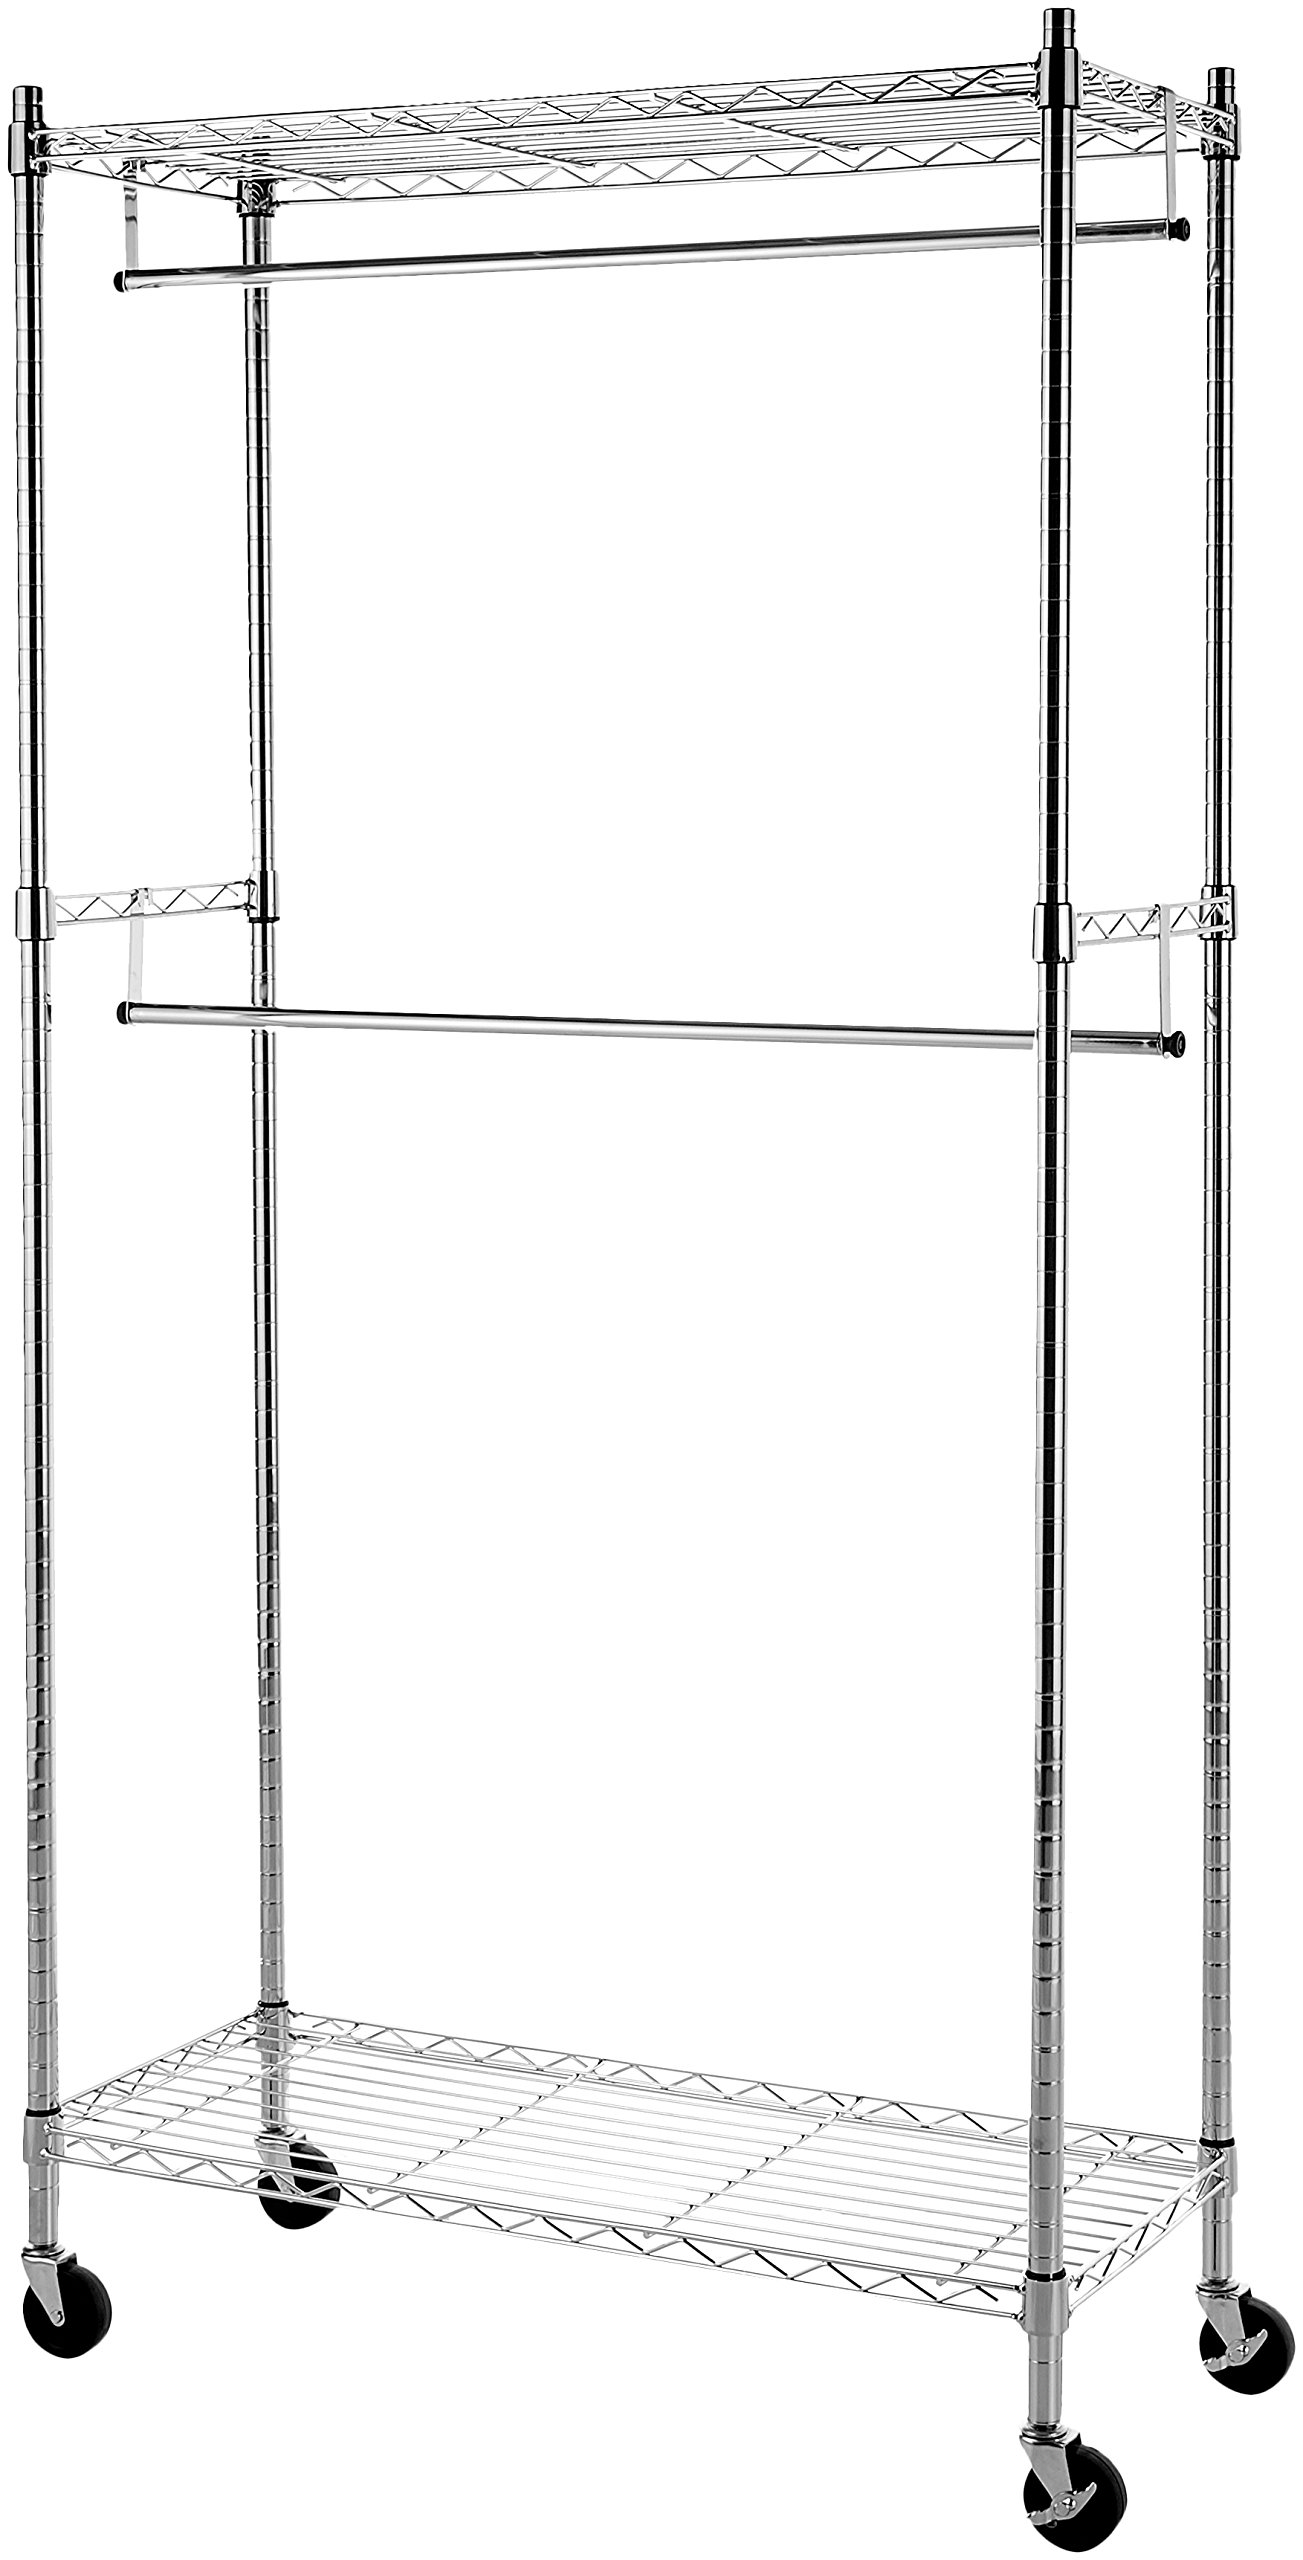 AmazonBasics Double Hanging Rod Garment Rolling Closet Organizer Rack, Chrome by AmazonBasics